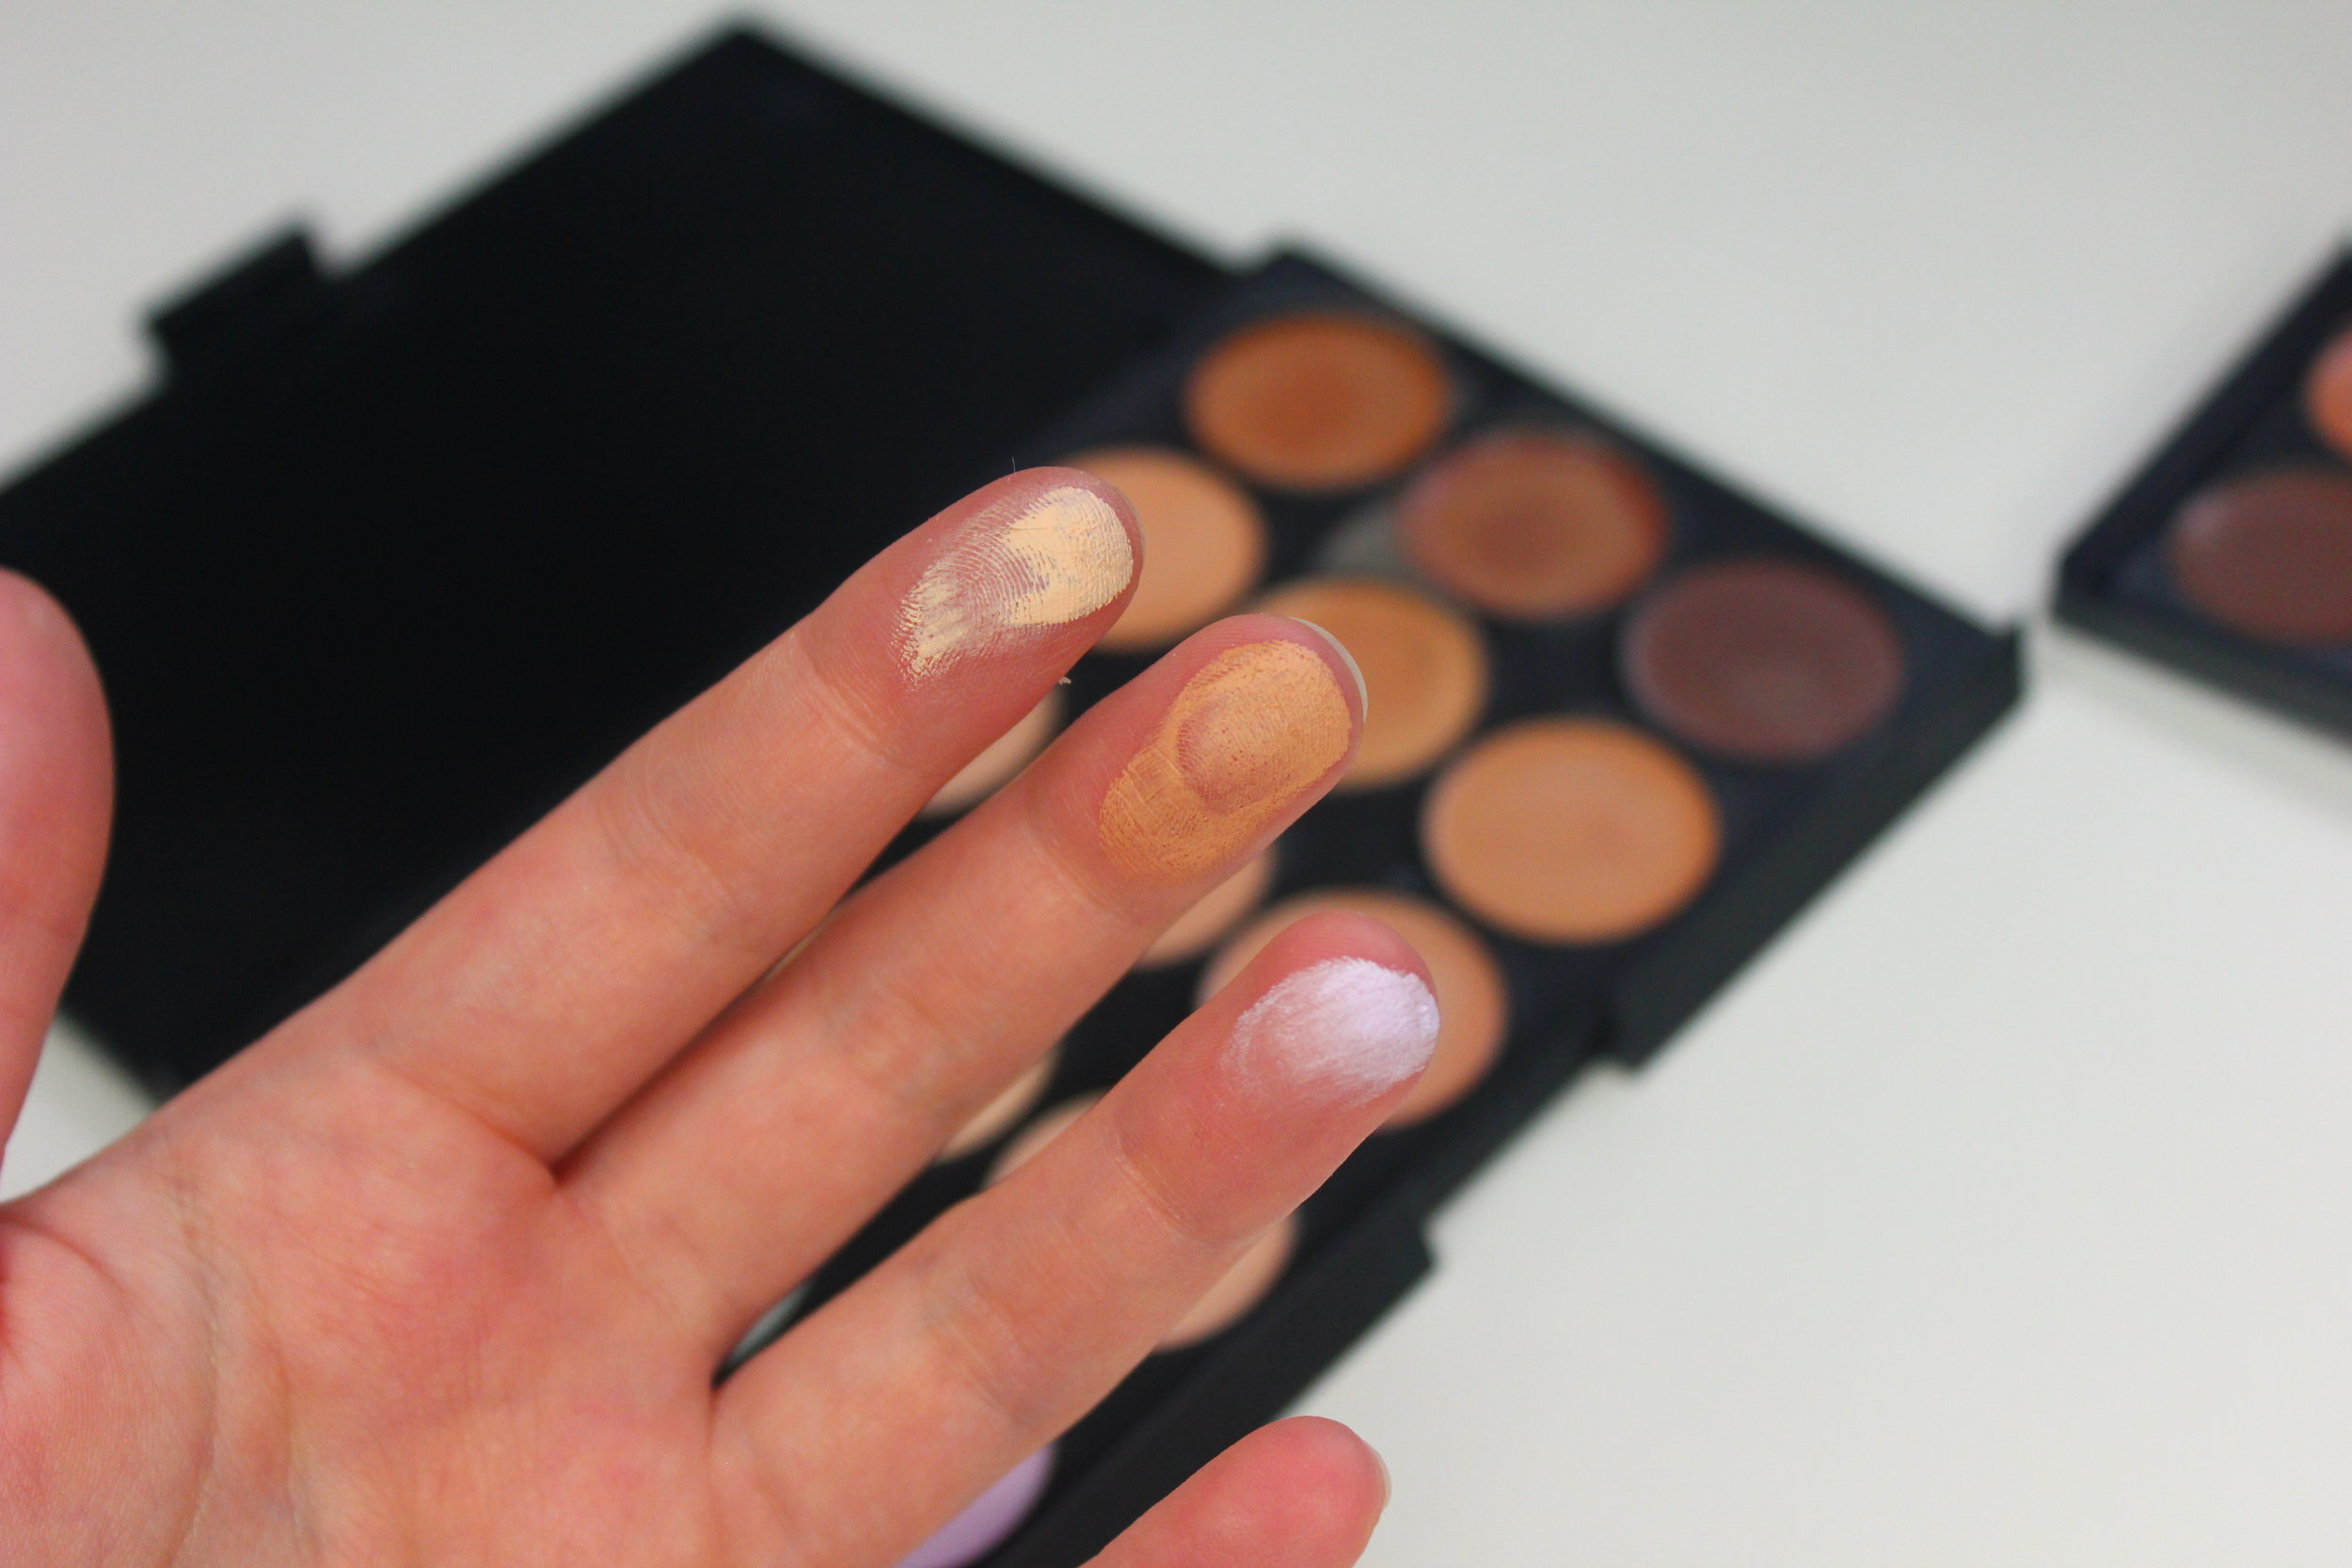 Coastal Scents Concealer Palette swatches